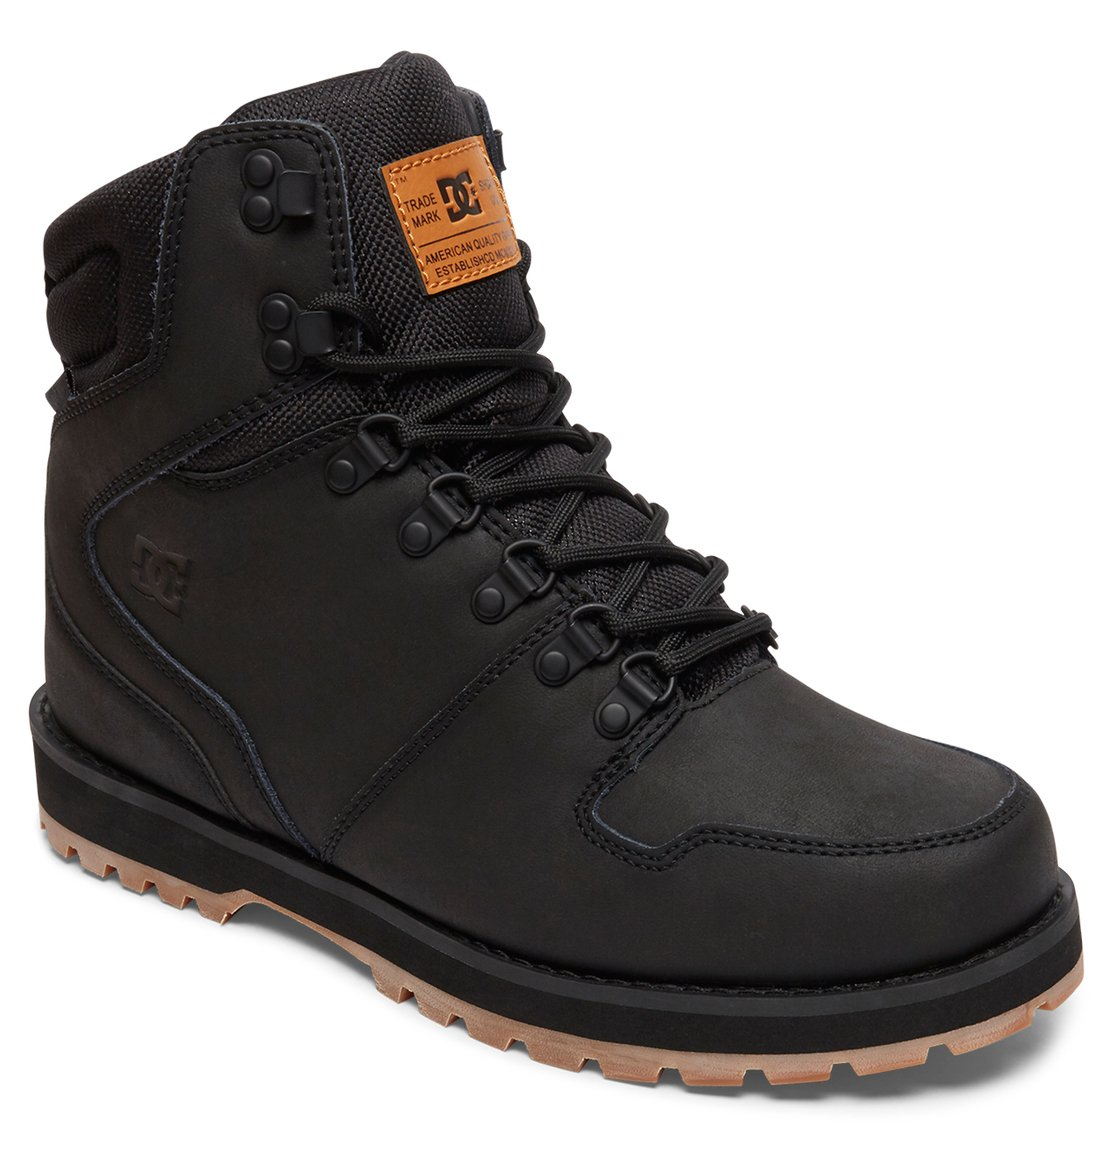 Find great deals on eBay for mens dc boots. Shop with confidence.